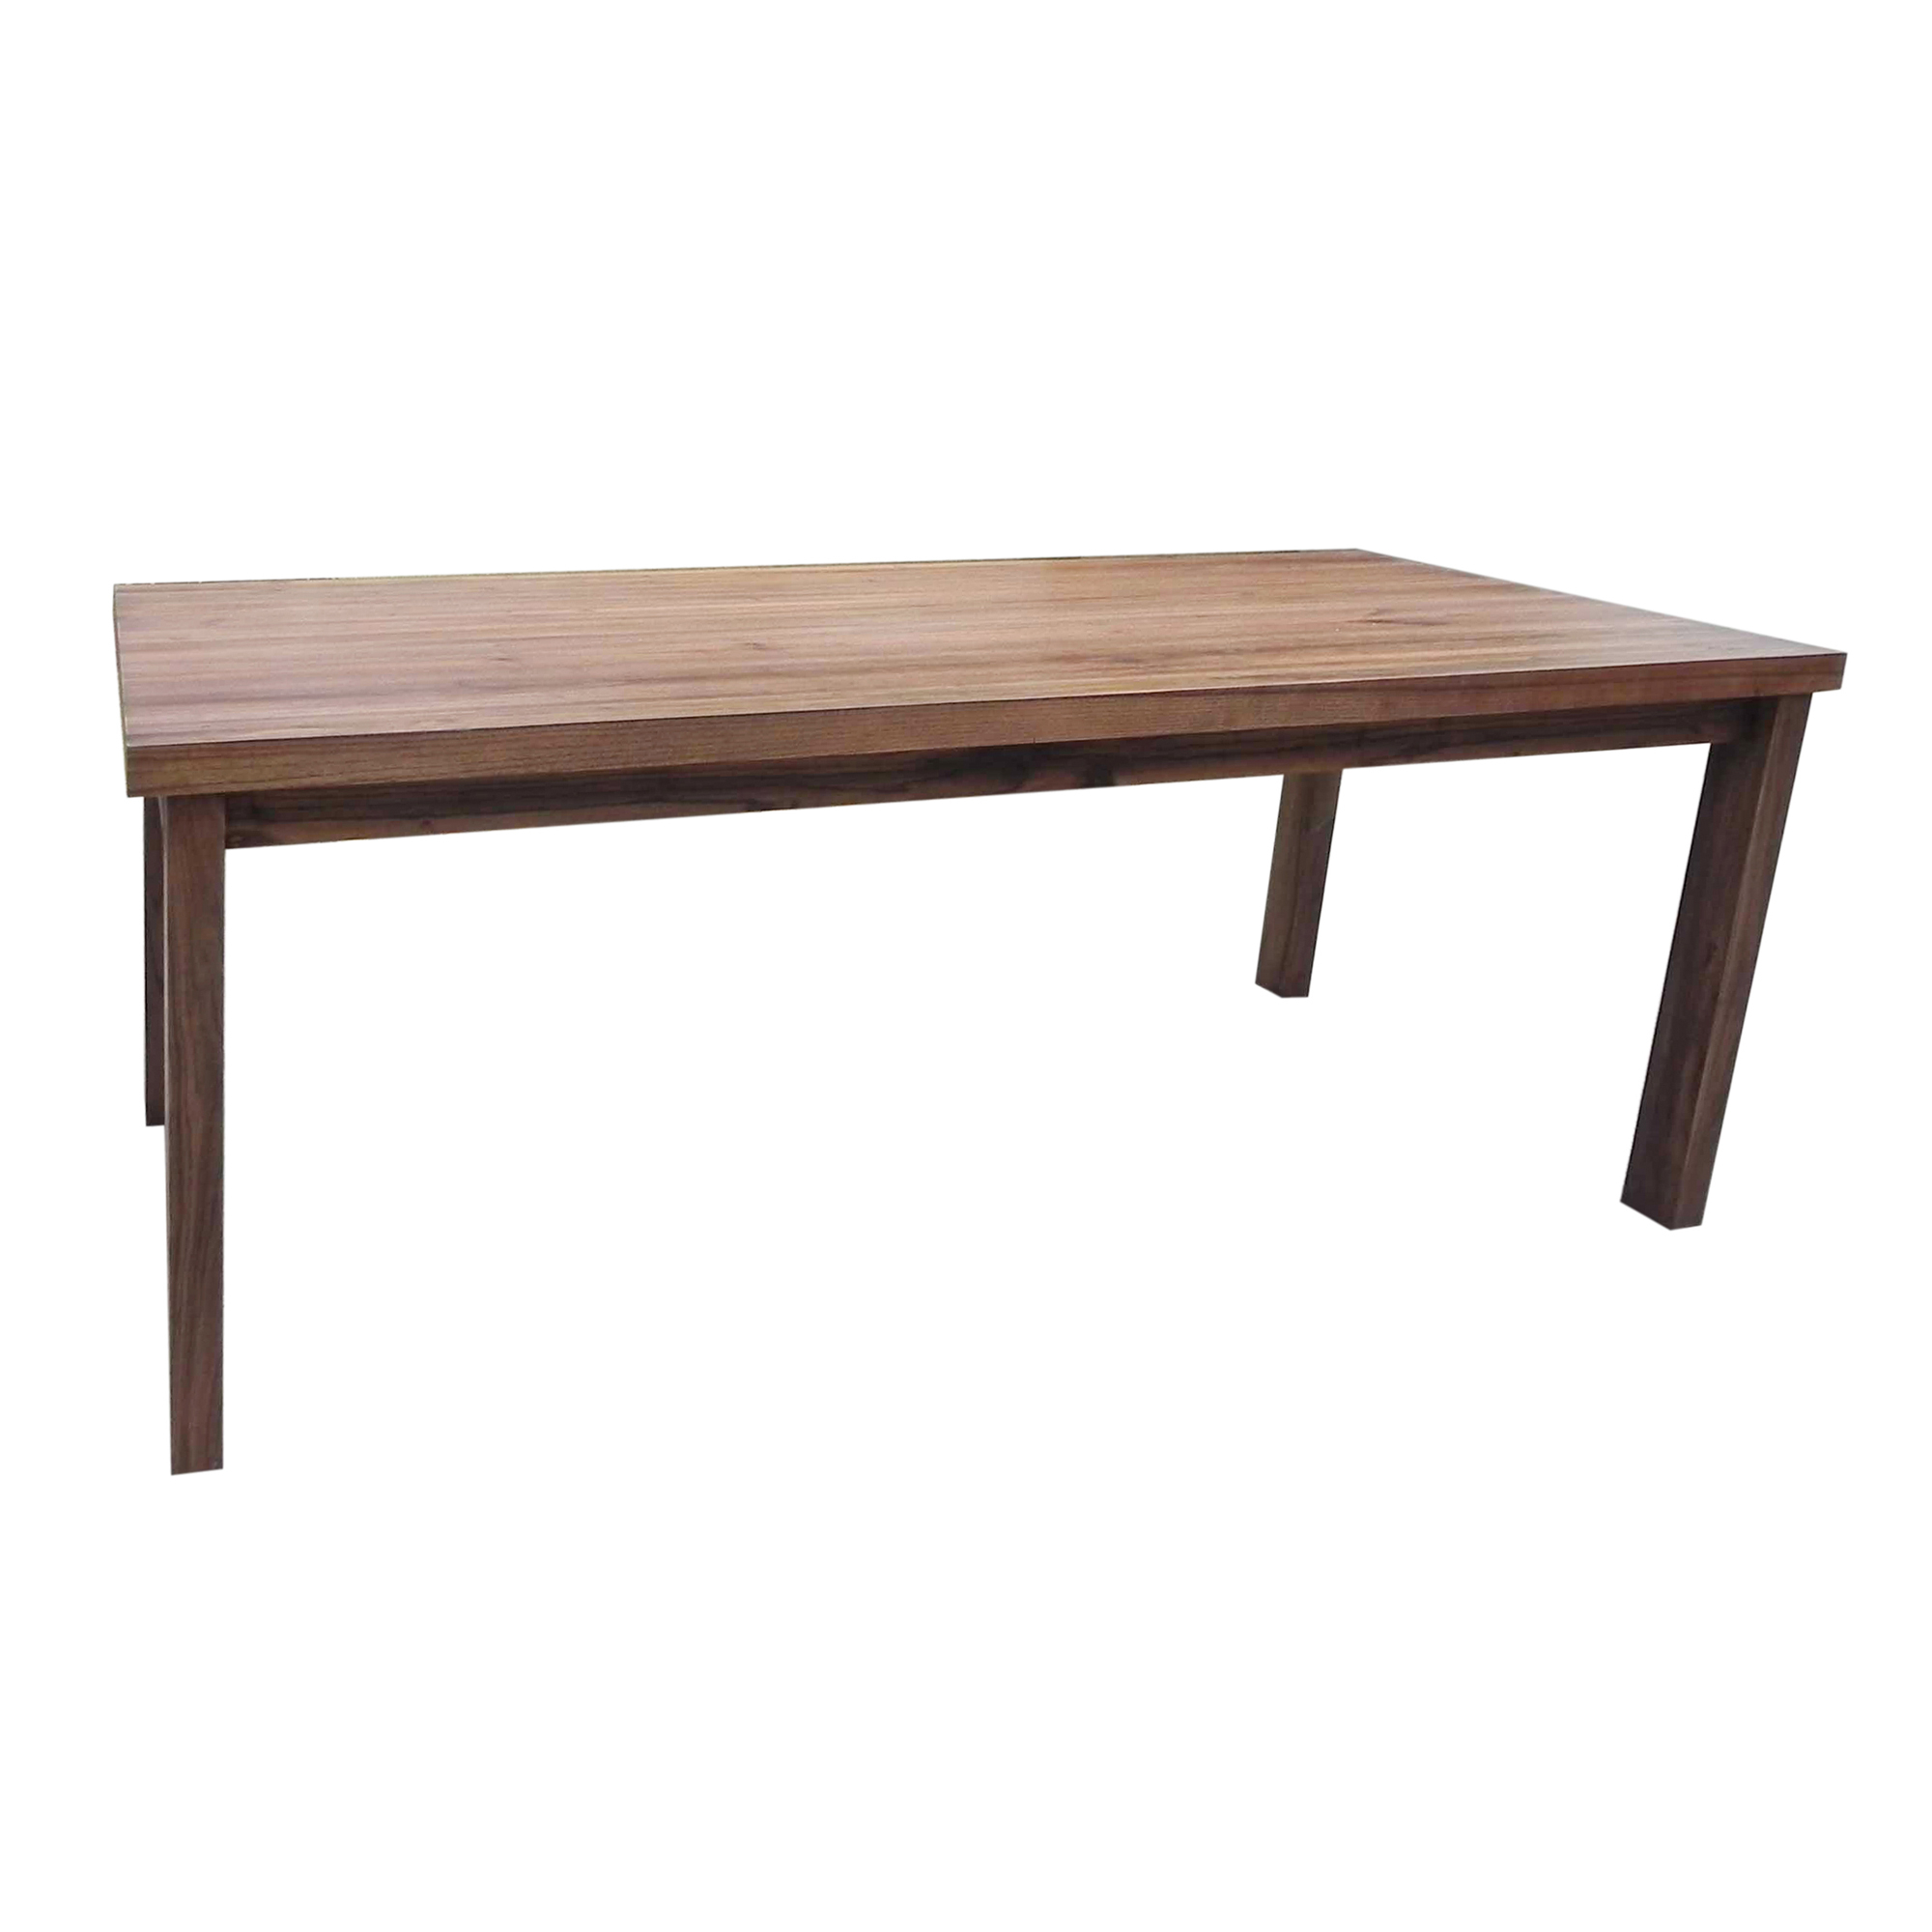 "Maria Yee Papyrus 76"" Extension Dining Table"